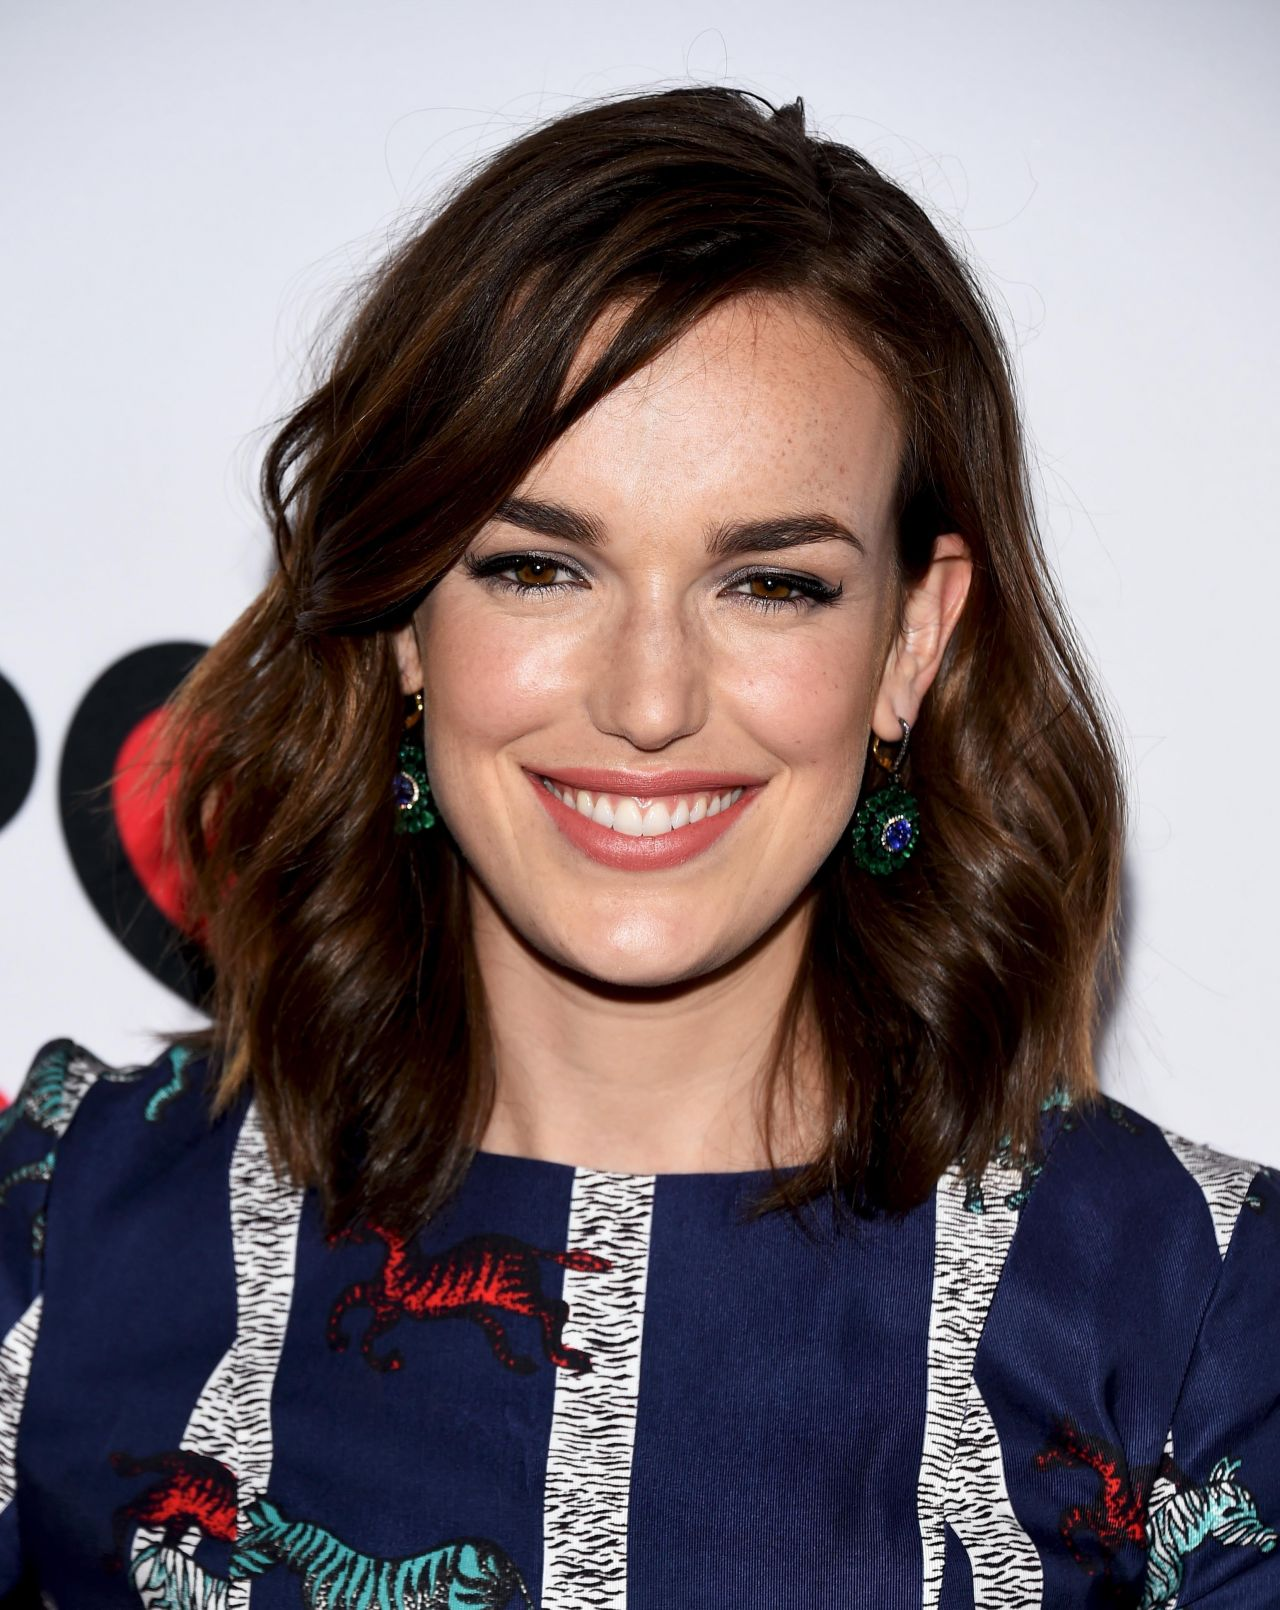 Elizabeth Henstridge Nude Photos 4